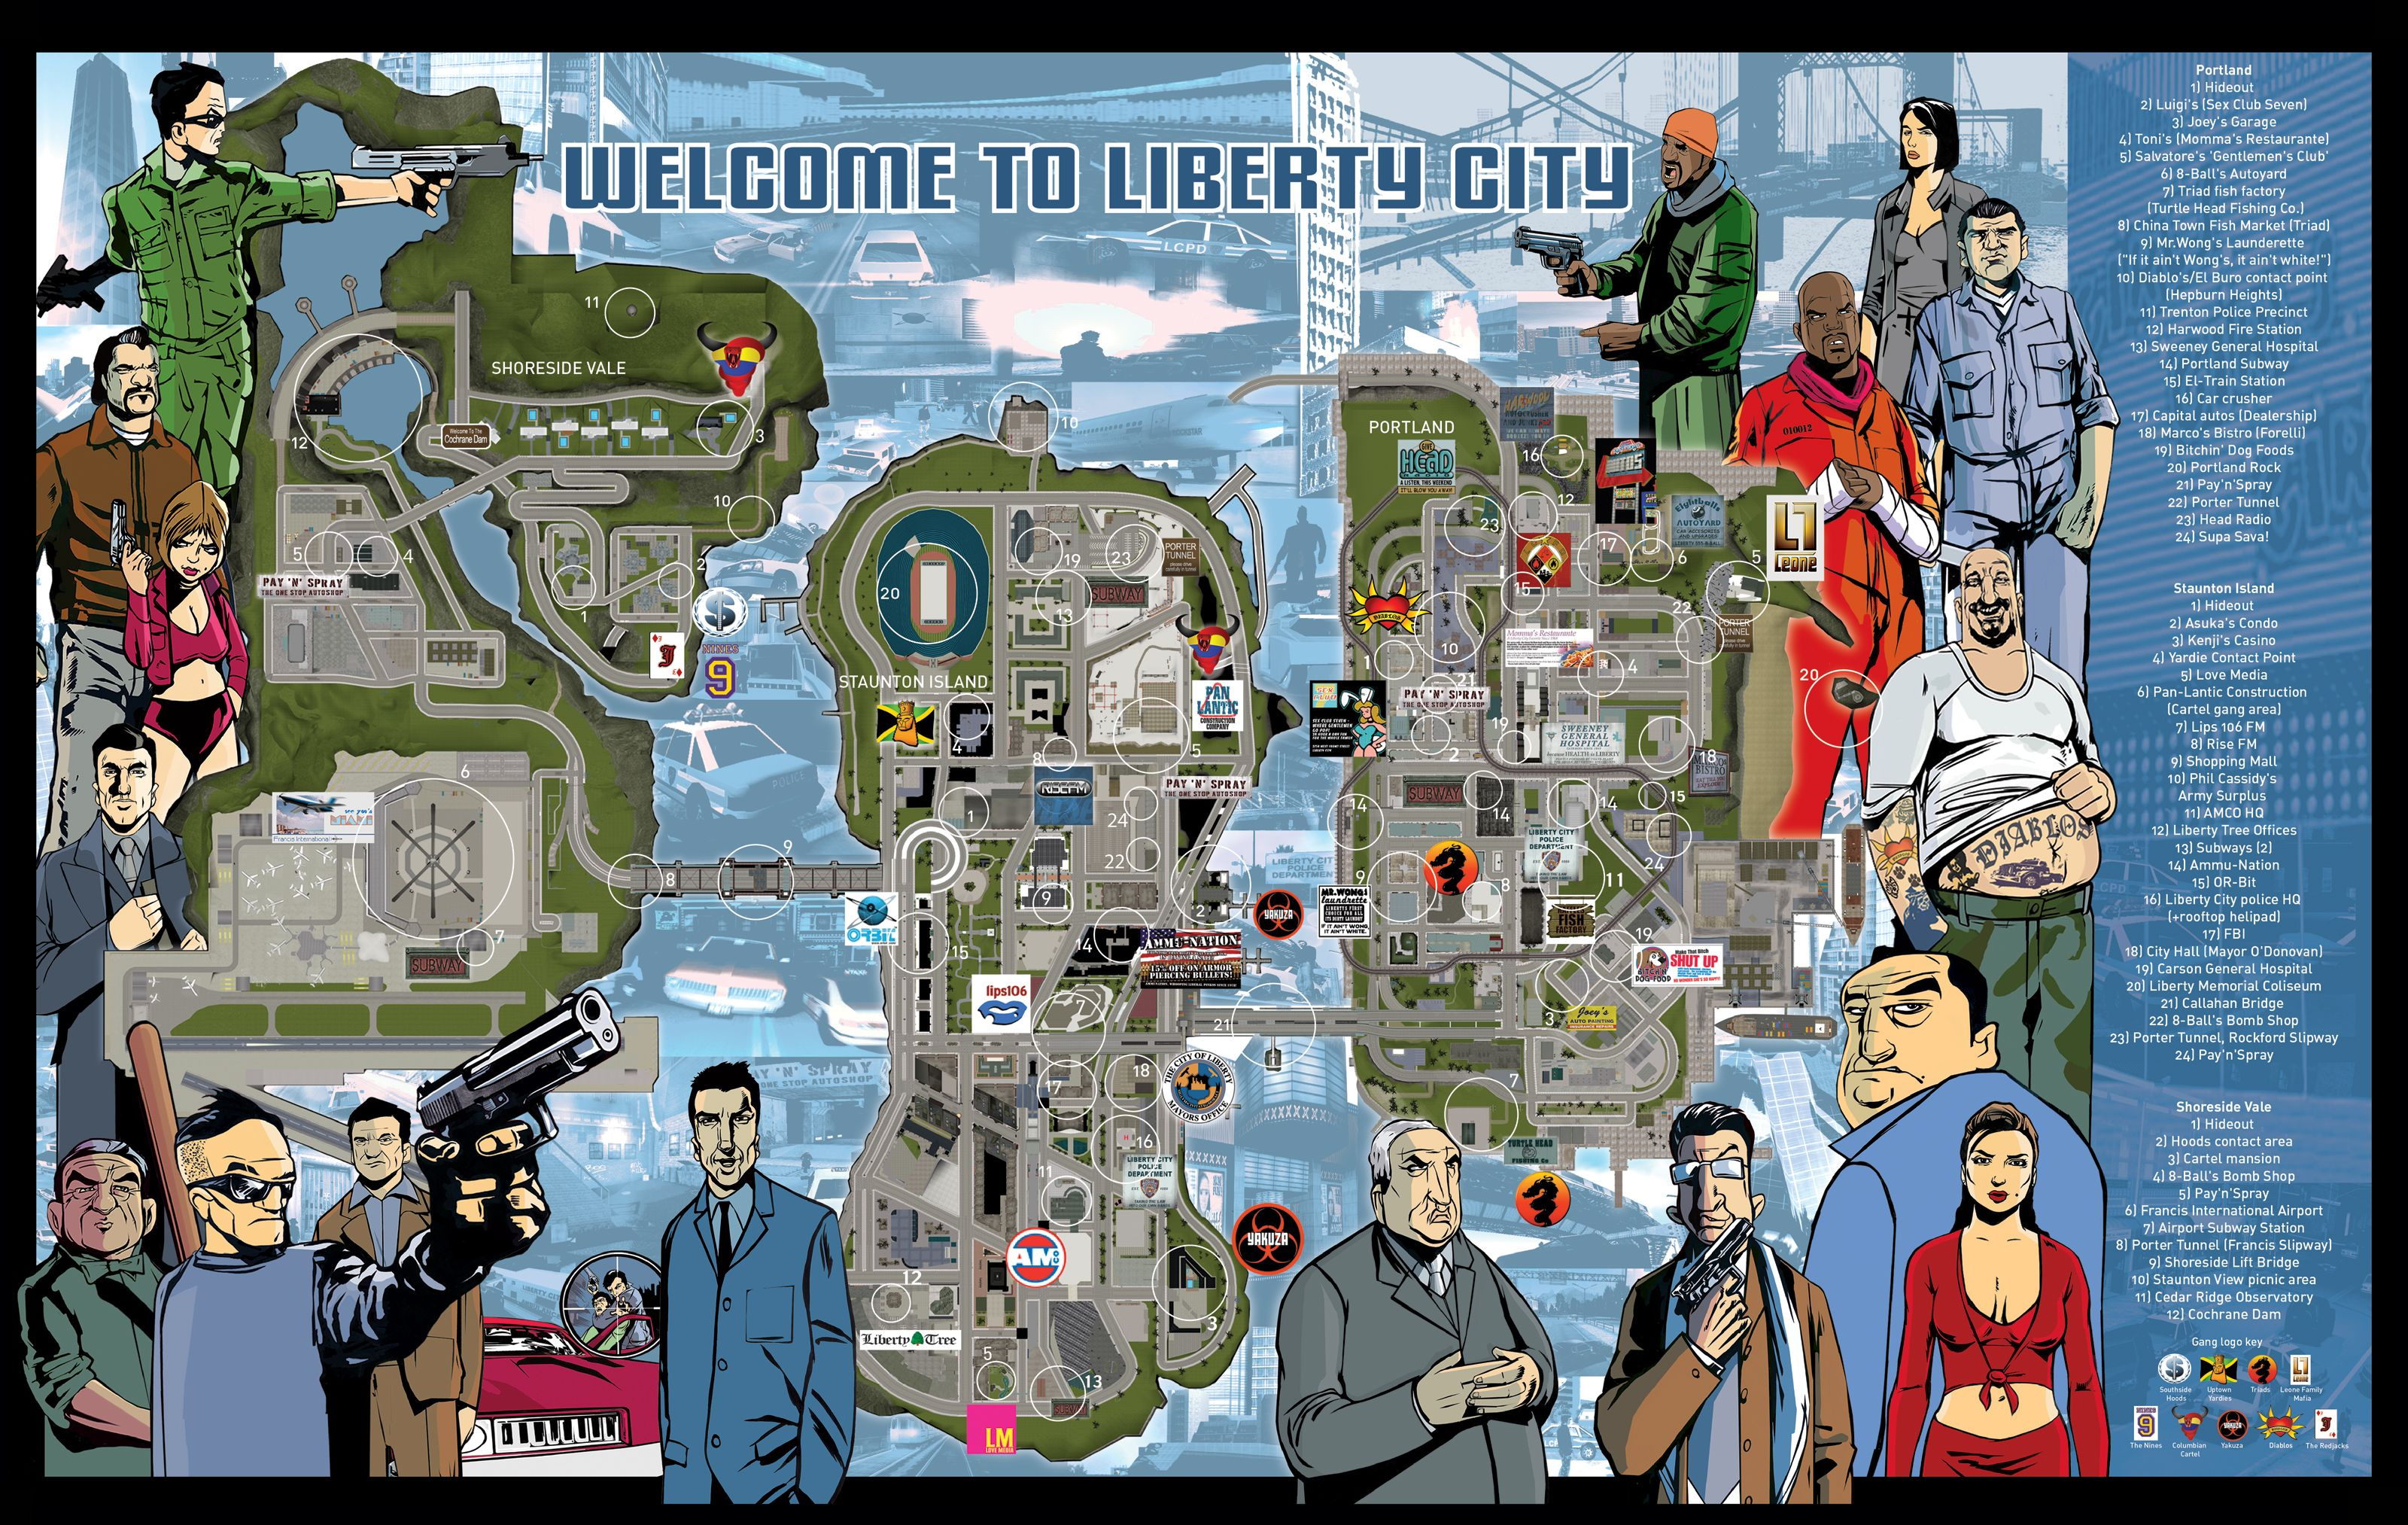 Gta 3 Map Just Because Grand Theft Auto Grand Theft Auto 3 Grand Theft Auto Series